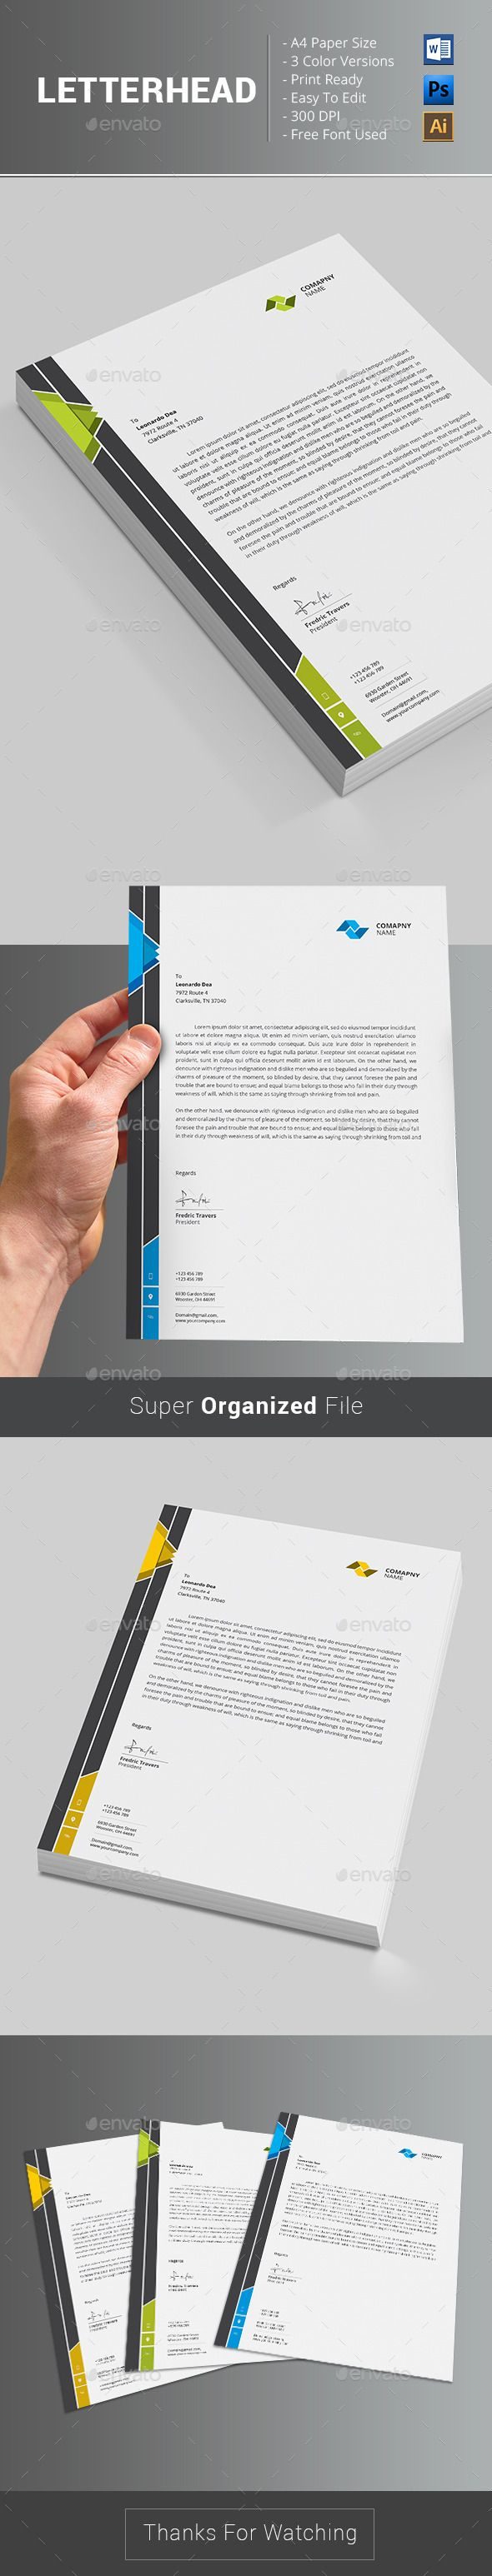 25 Beautiful Letterhead Template Ideas On Pinterest Letterhead